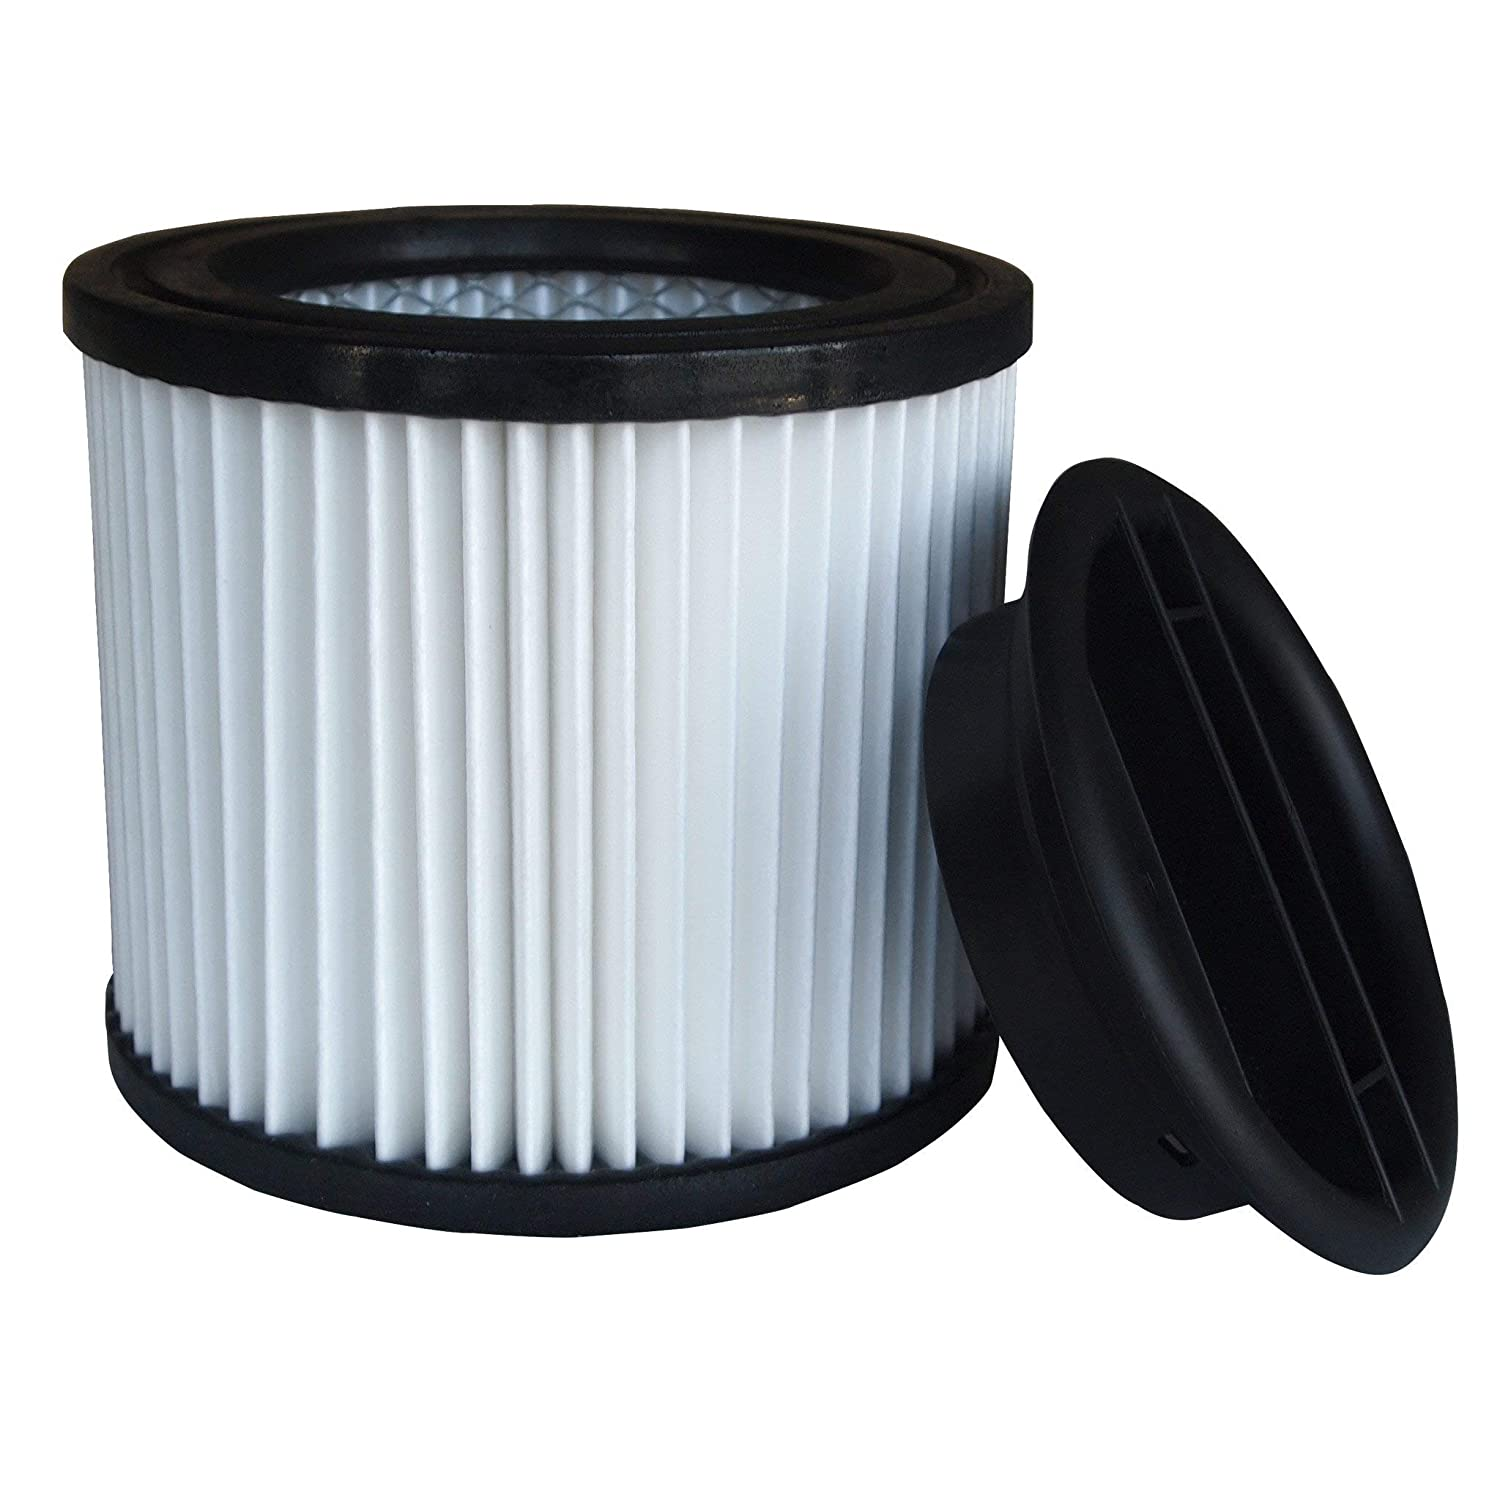 Stanley 08-2566B Cartridge Filter For 6 gallon